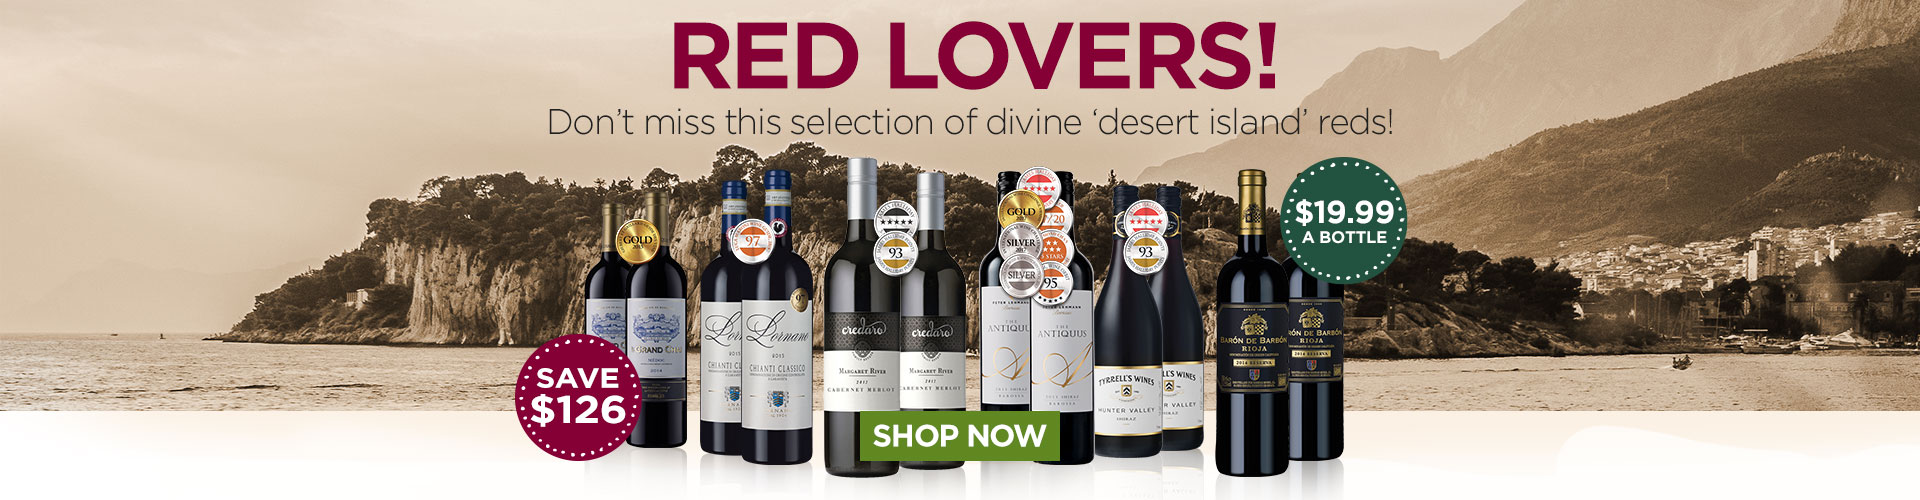 Red Lovers! Don't miss these divine 'desert island' reds!